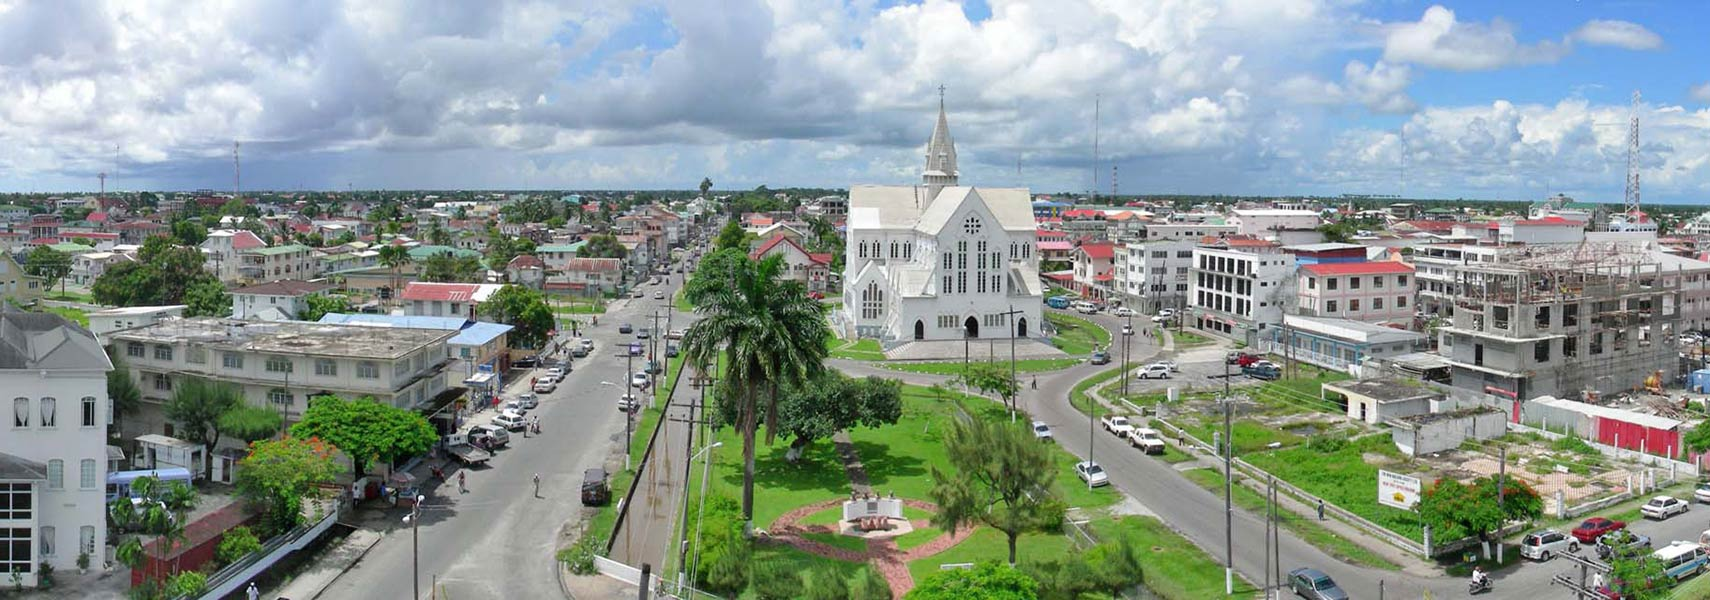 Panorama of Georgetown, Guyana with St. George's Cathedral